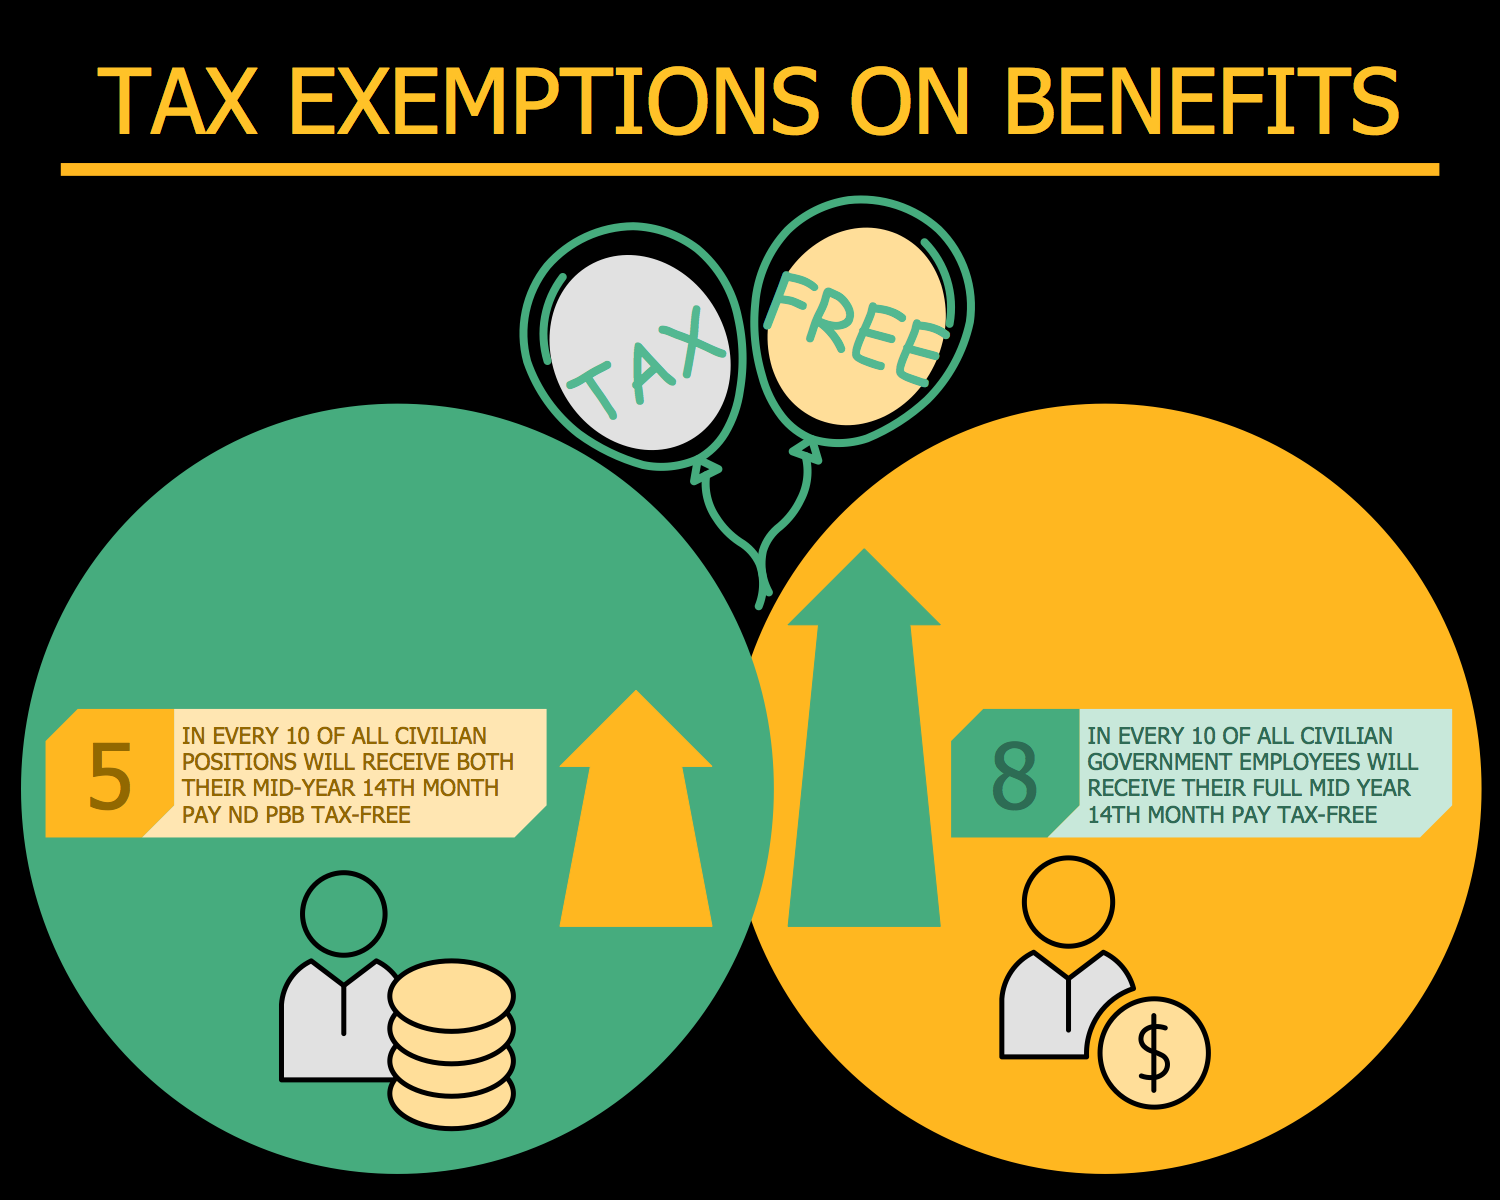 Tax Exemptions on Benefits